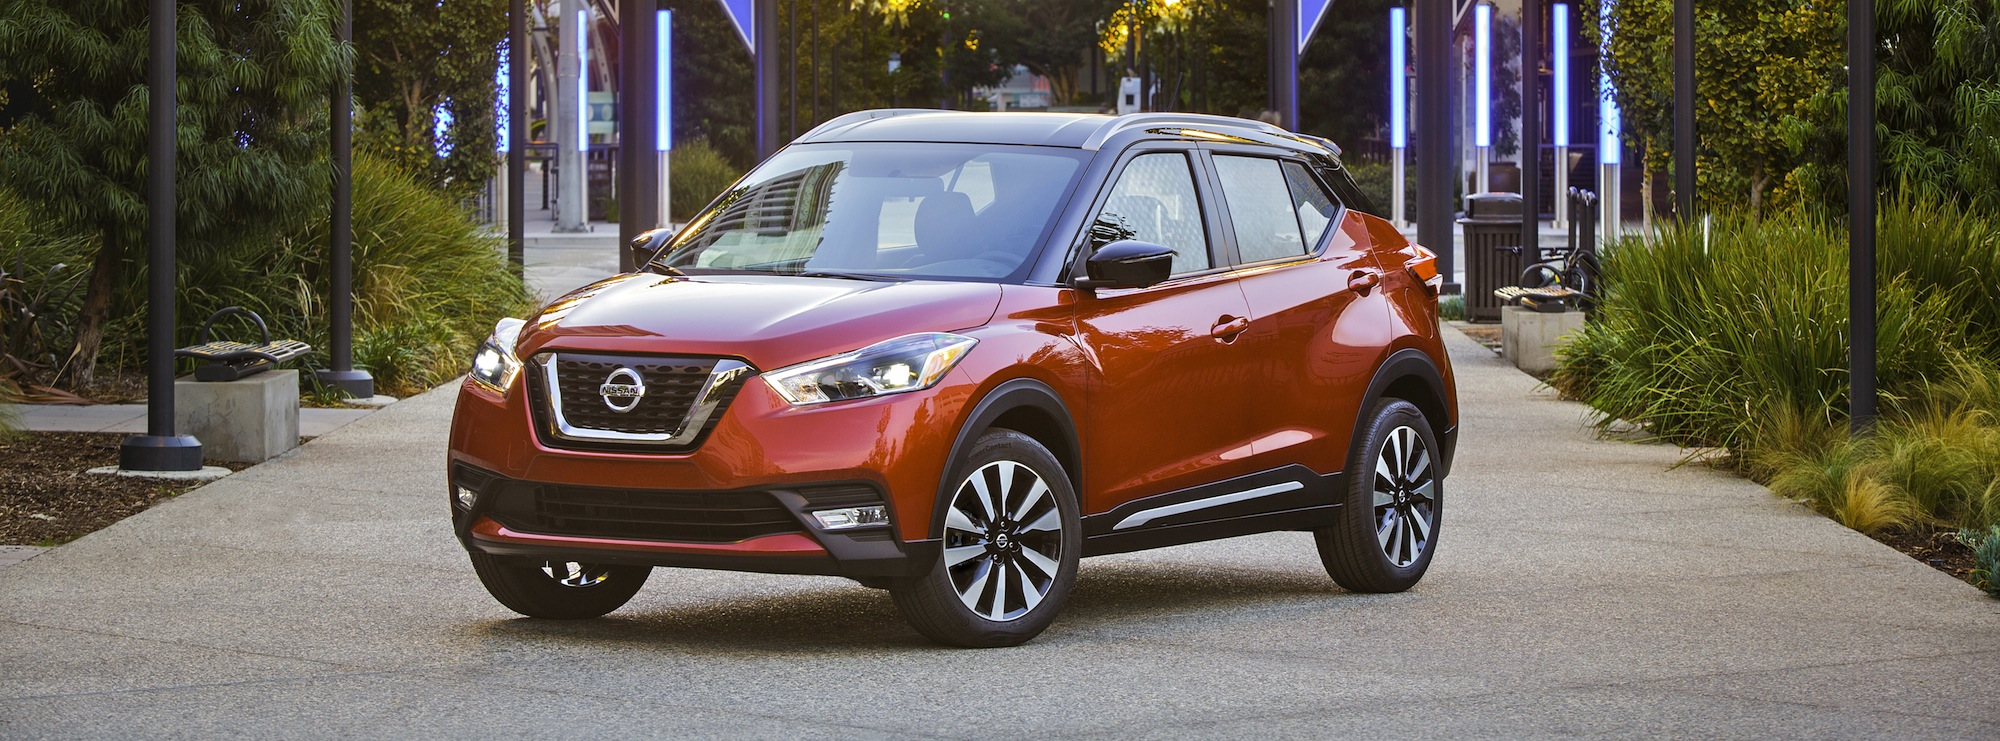 2018 Nissan Kicks: A New Subcompact SUV Joins The Lineup